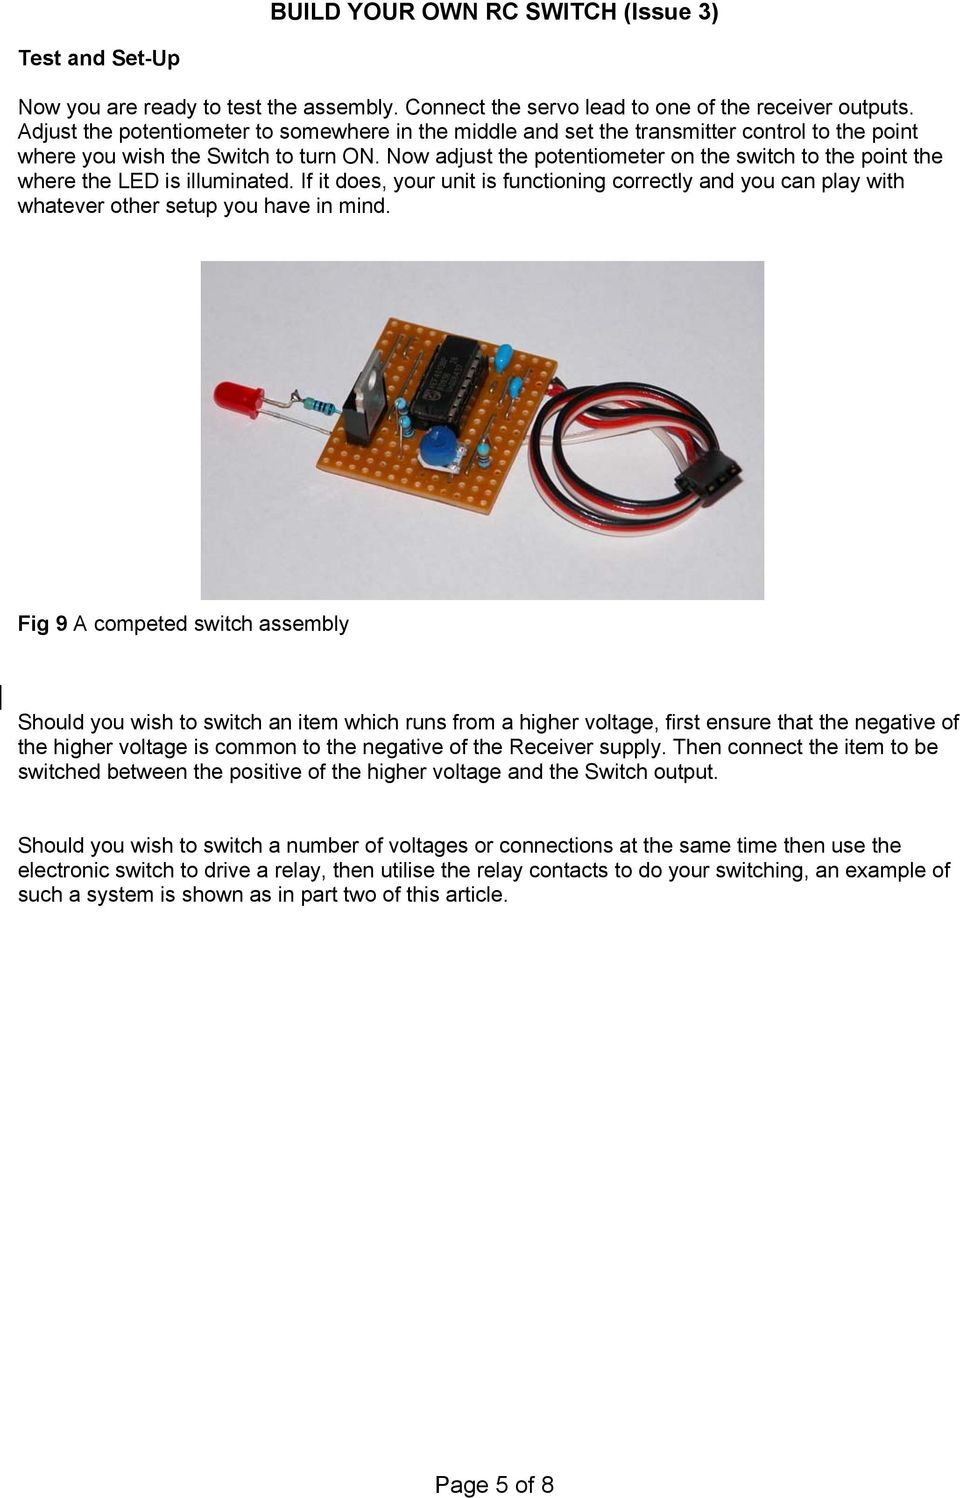 Build Your Own Rc Switch Issue 3 Pdf Where You Circuit The Used In These Examples Is A Now Adjust Potentiometer On To Point Led Illuminated